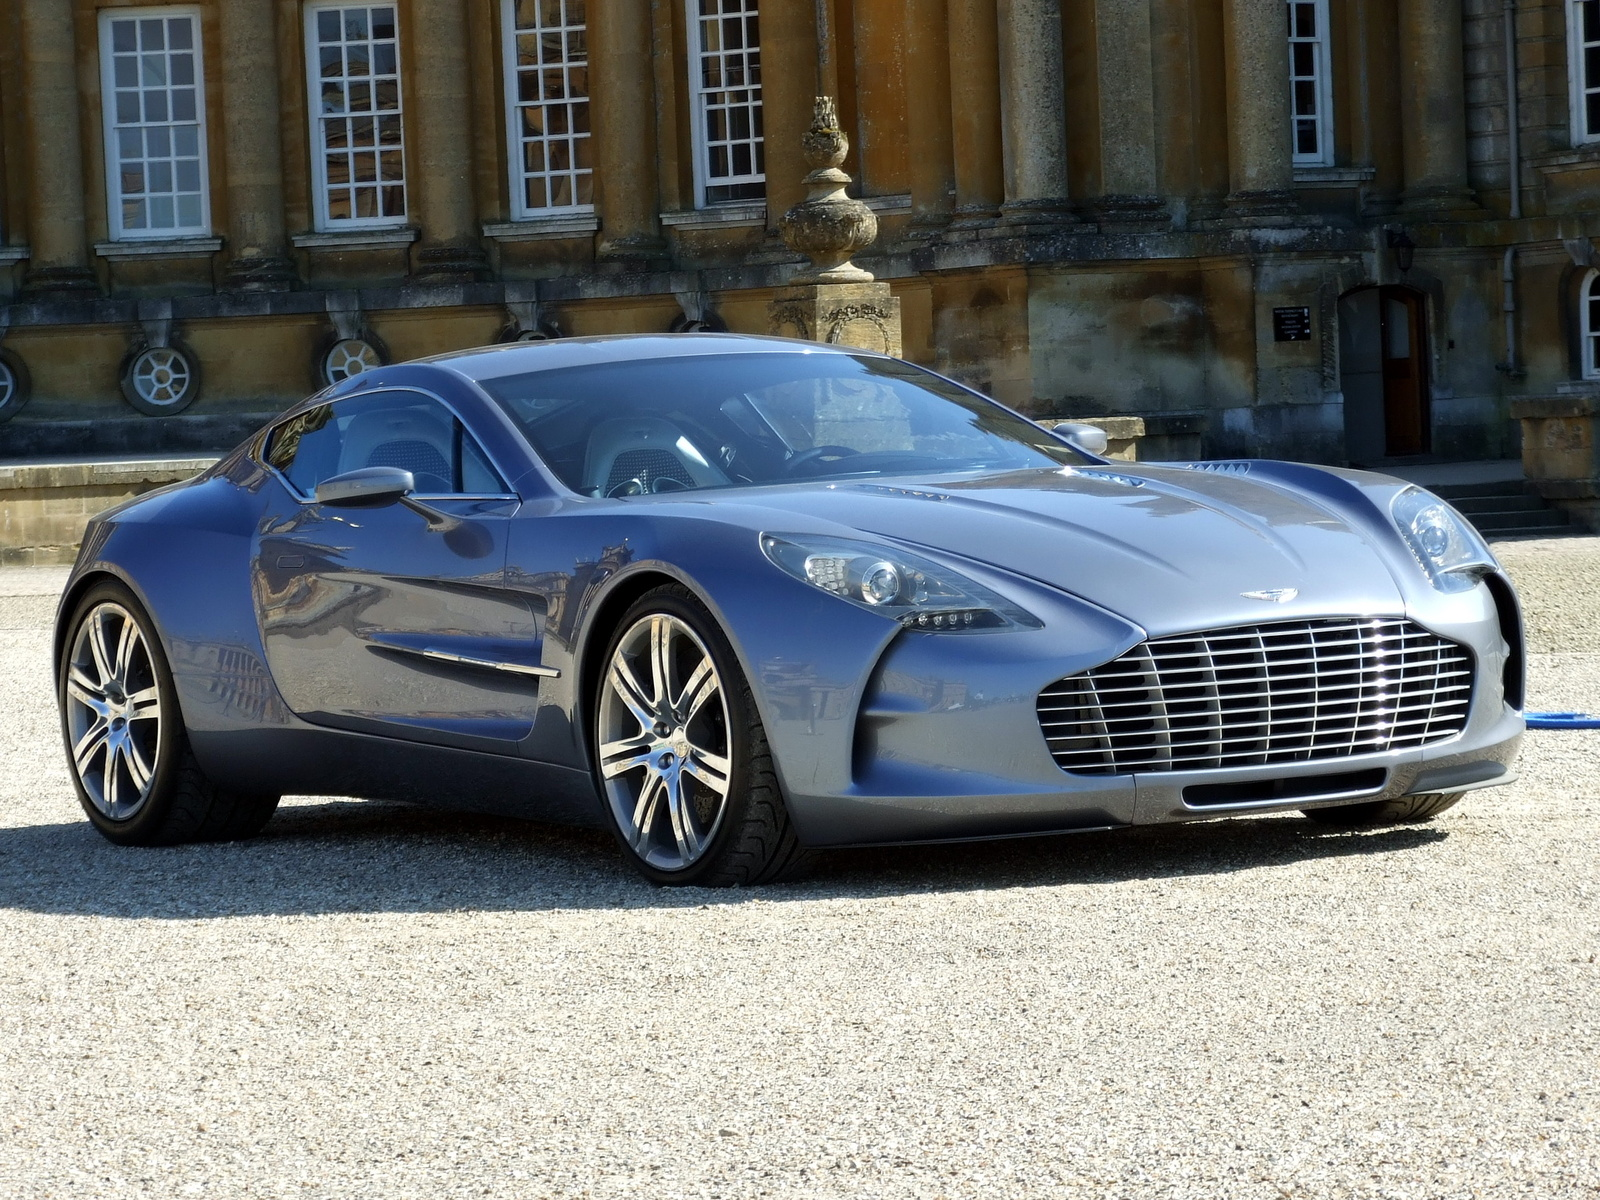 2010 aston martin one 77 pictures information and specs. Black Bedroom Furniture Sets. Home Design Ideas